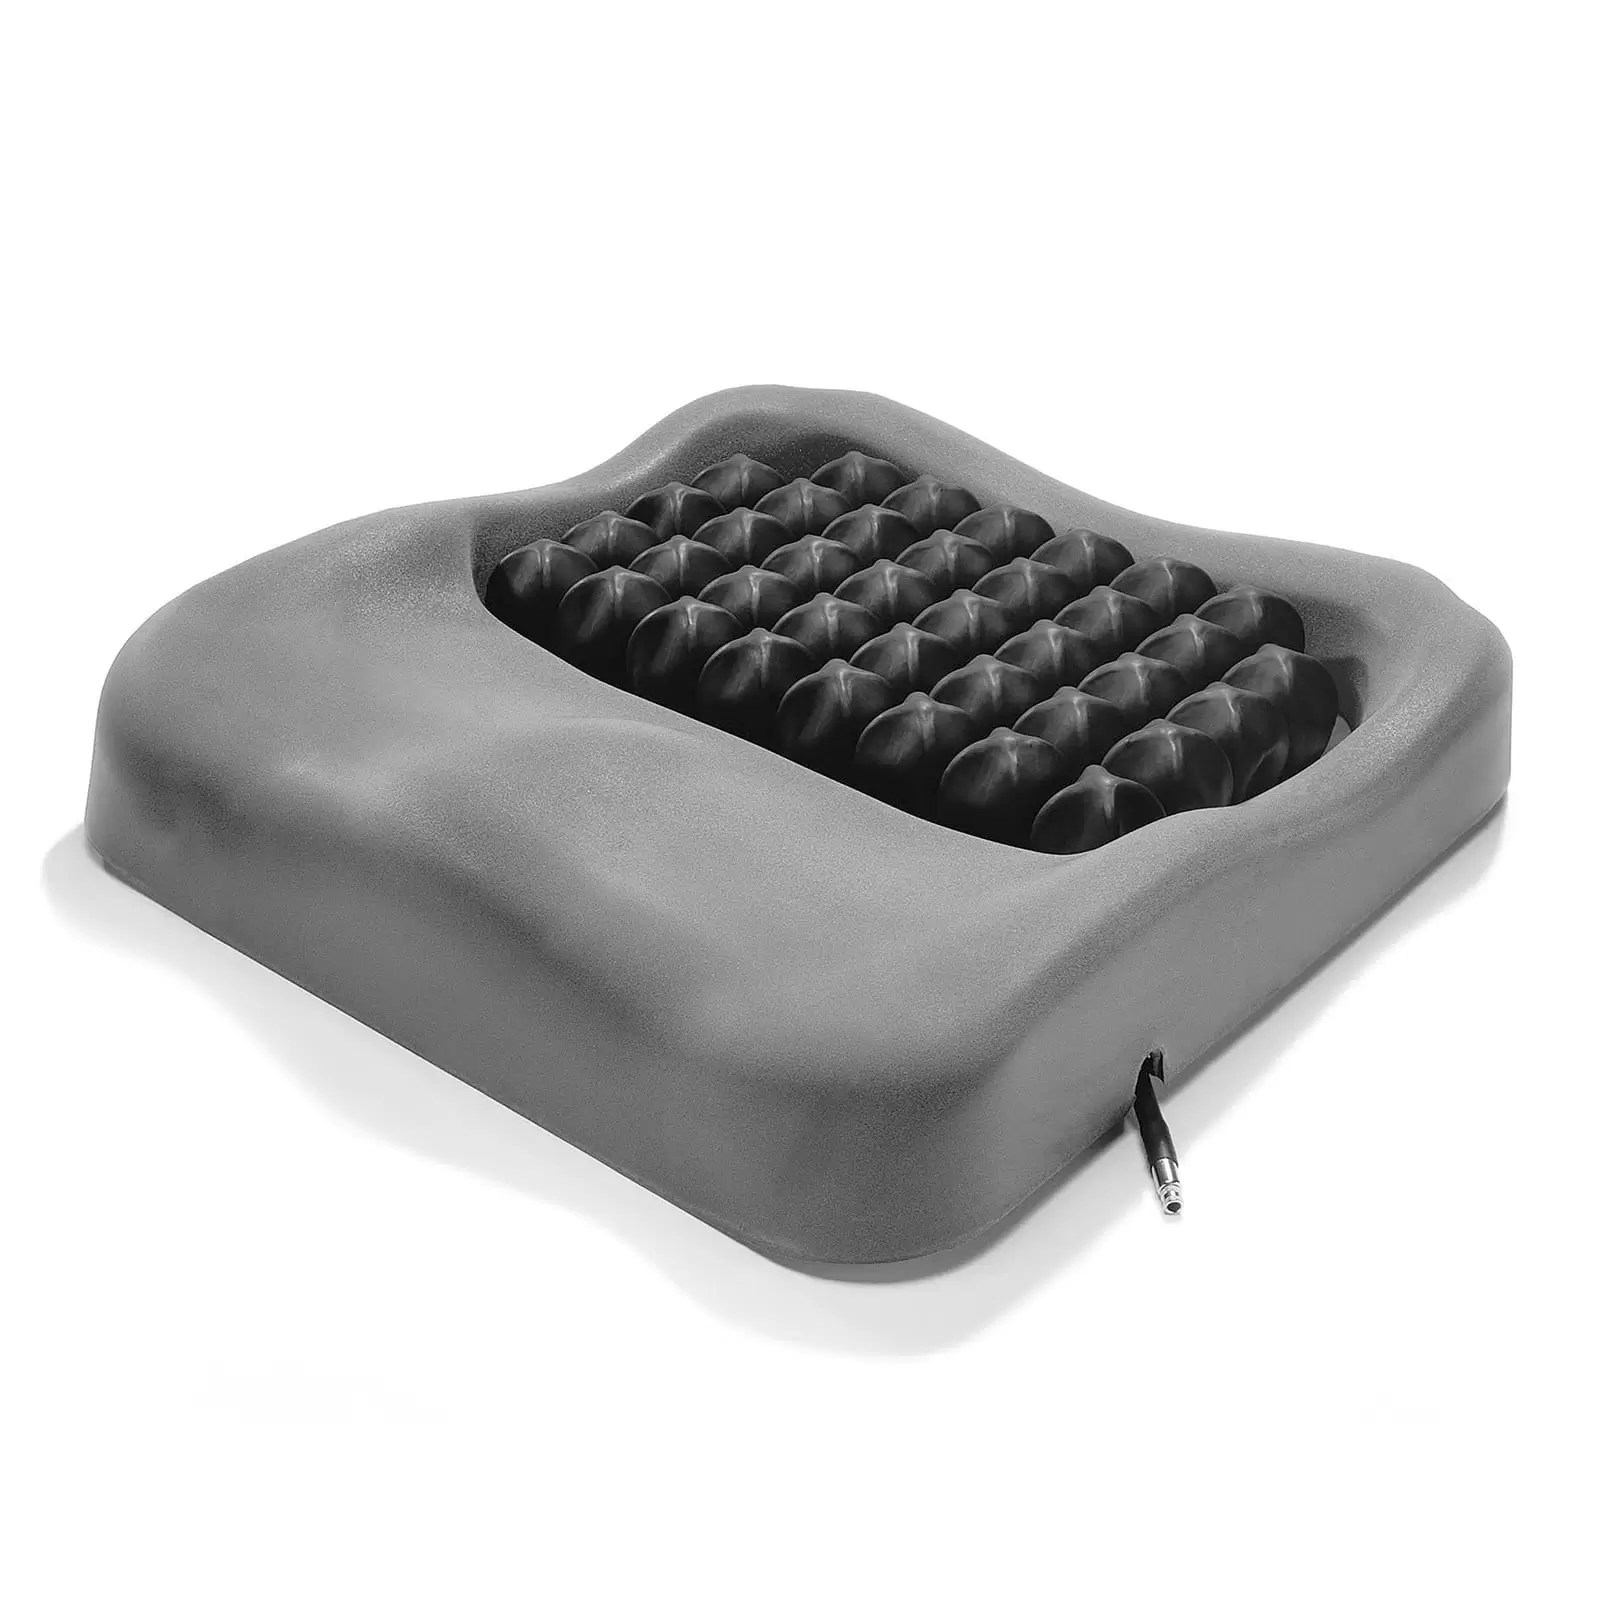 Wheel Chair Cushion Roho Nexus Spirit Wheelchair Cushion